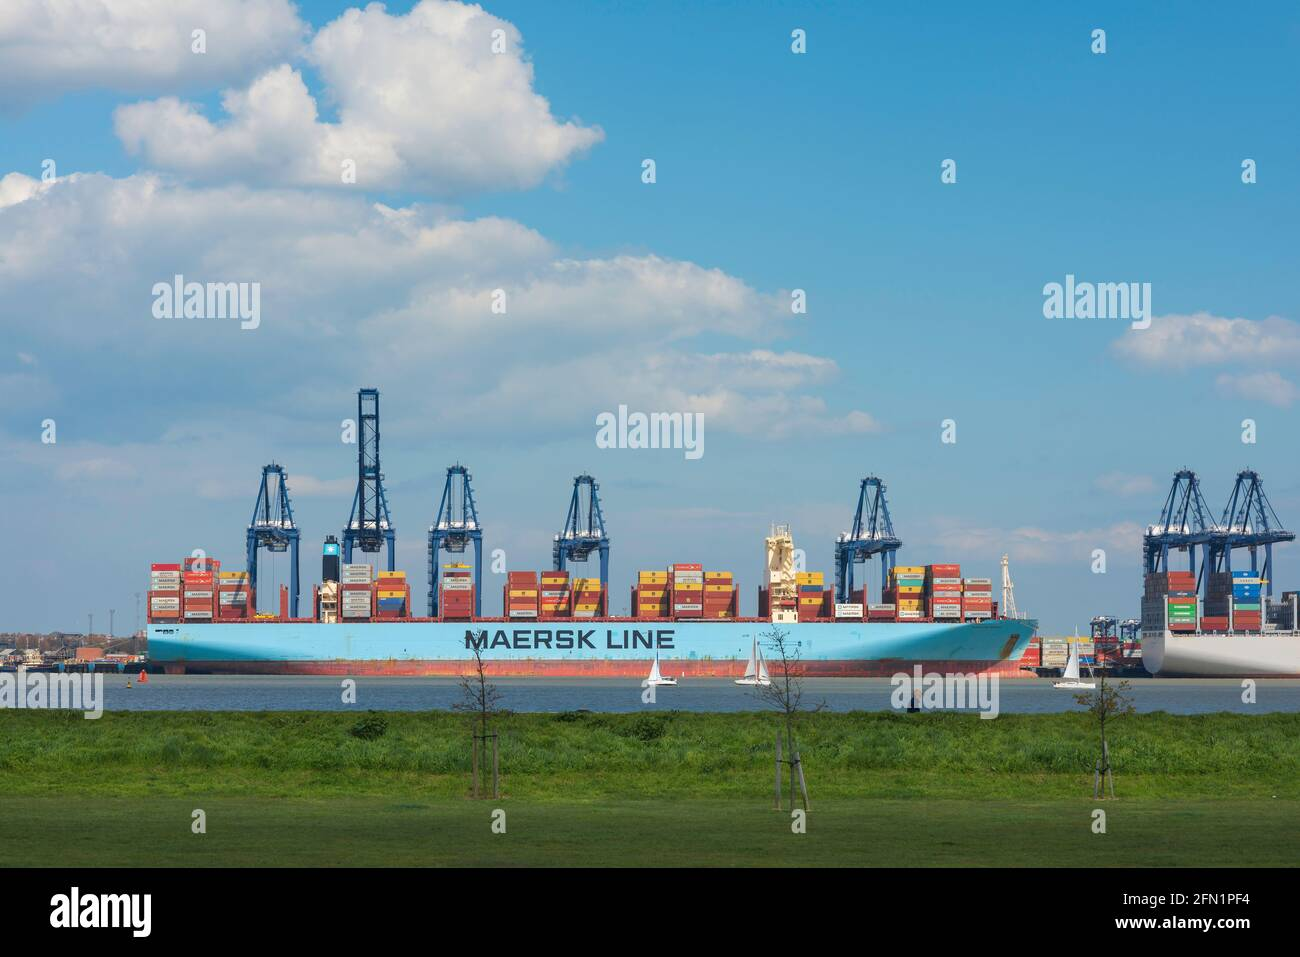 Container ship, view from Harwich across the River Stour towards a container ship being unloaded at Felixstowe docks in Suffolk, England, UK Stock Photo